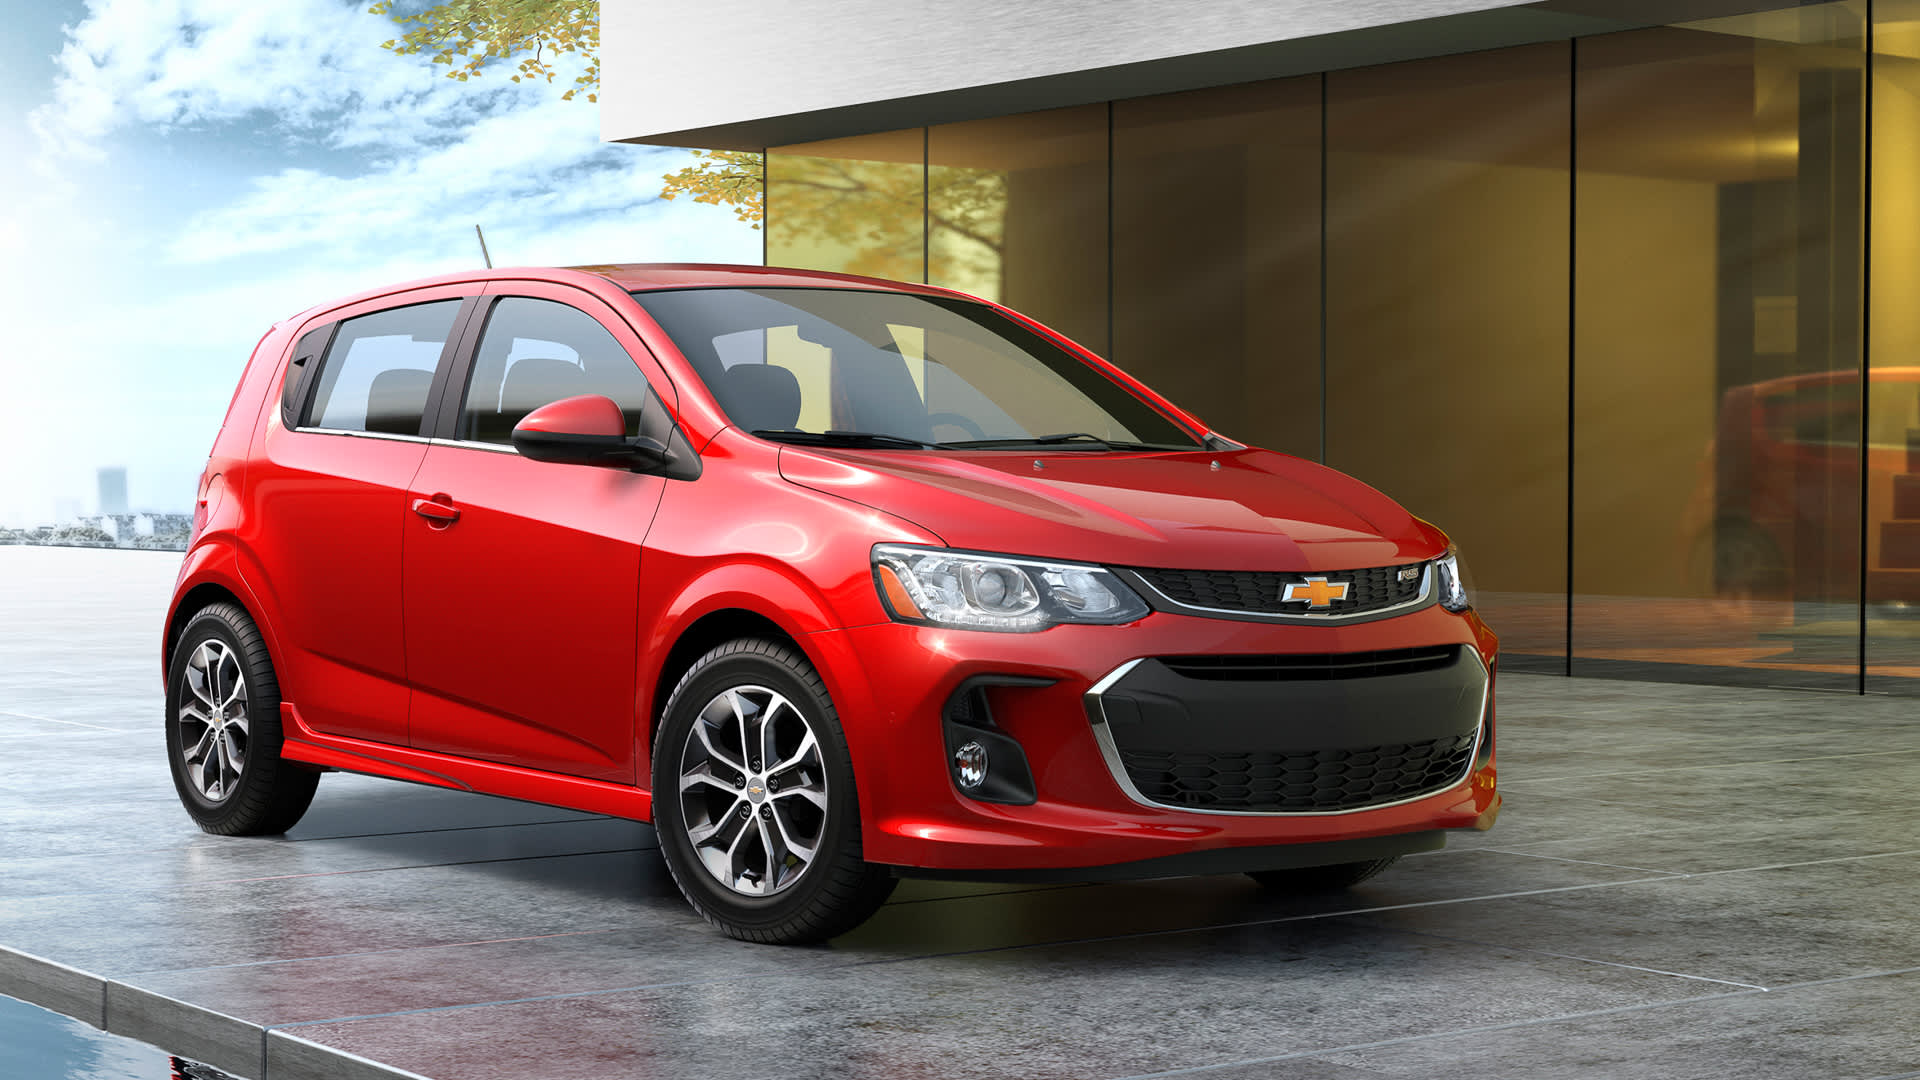 GM discontinues Chevrolet Sonic amid dismal sales and push toward EVs